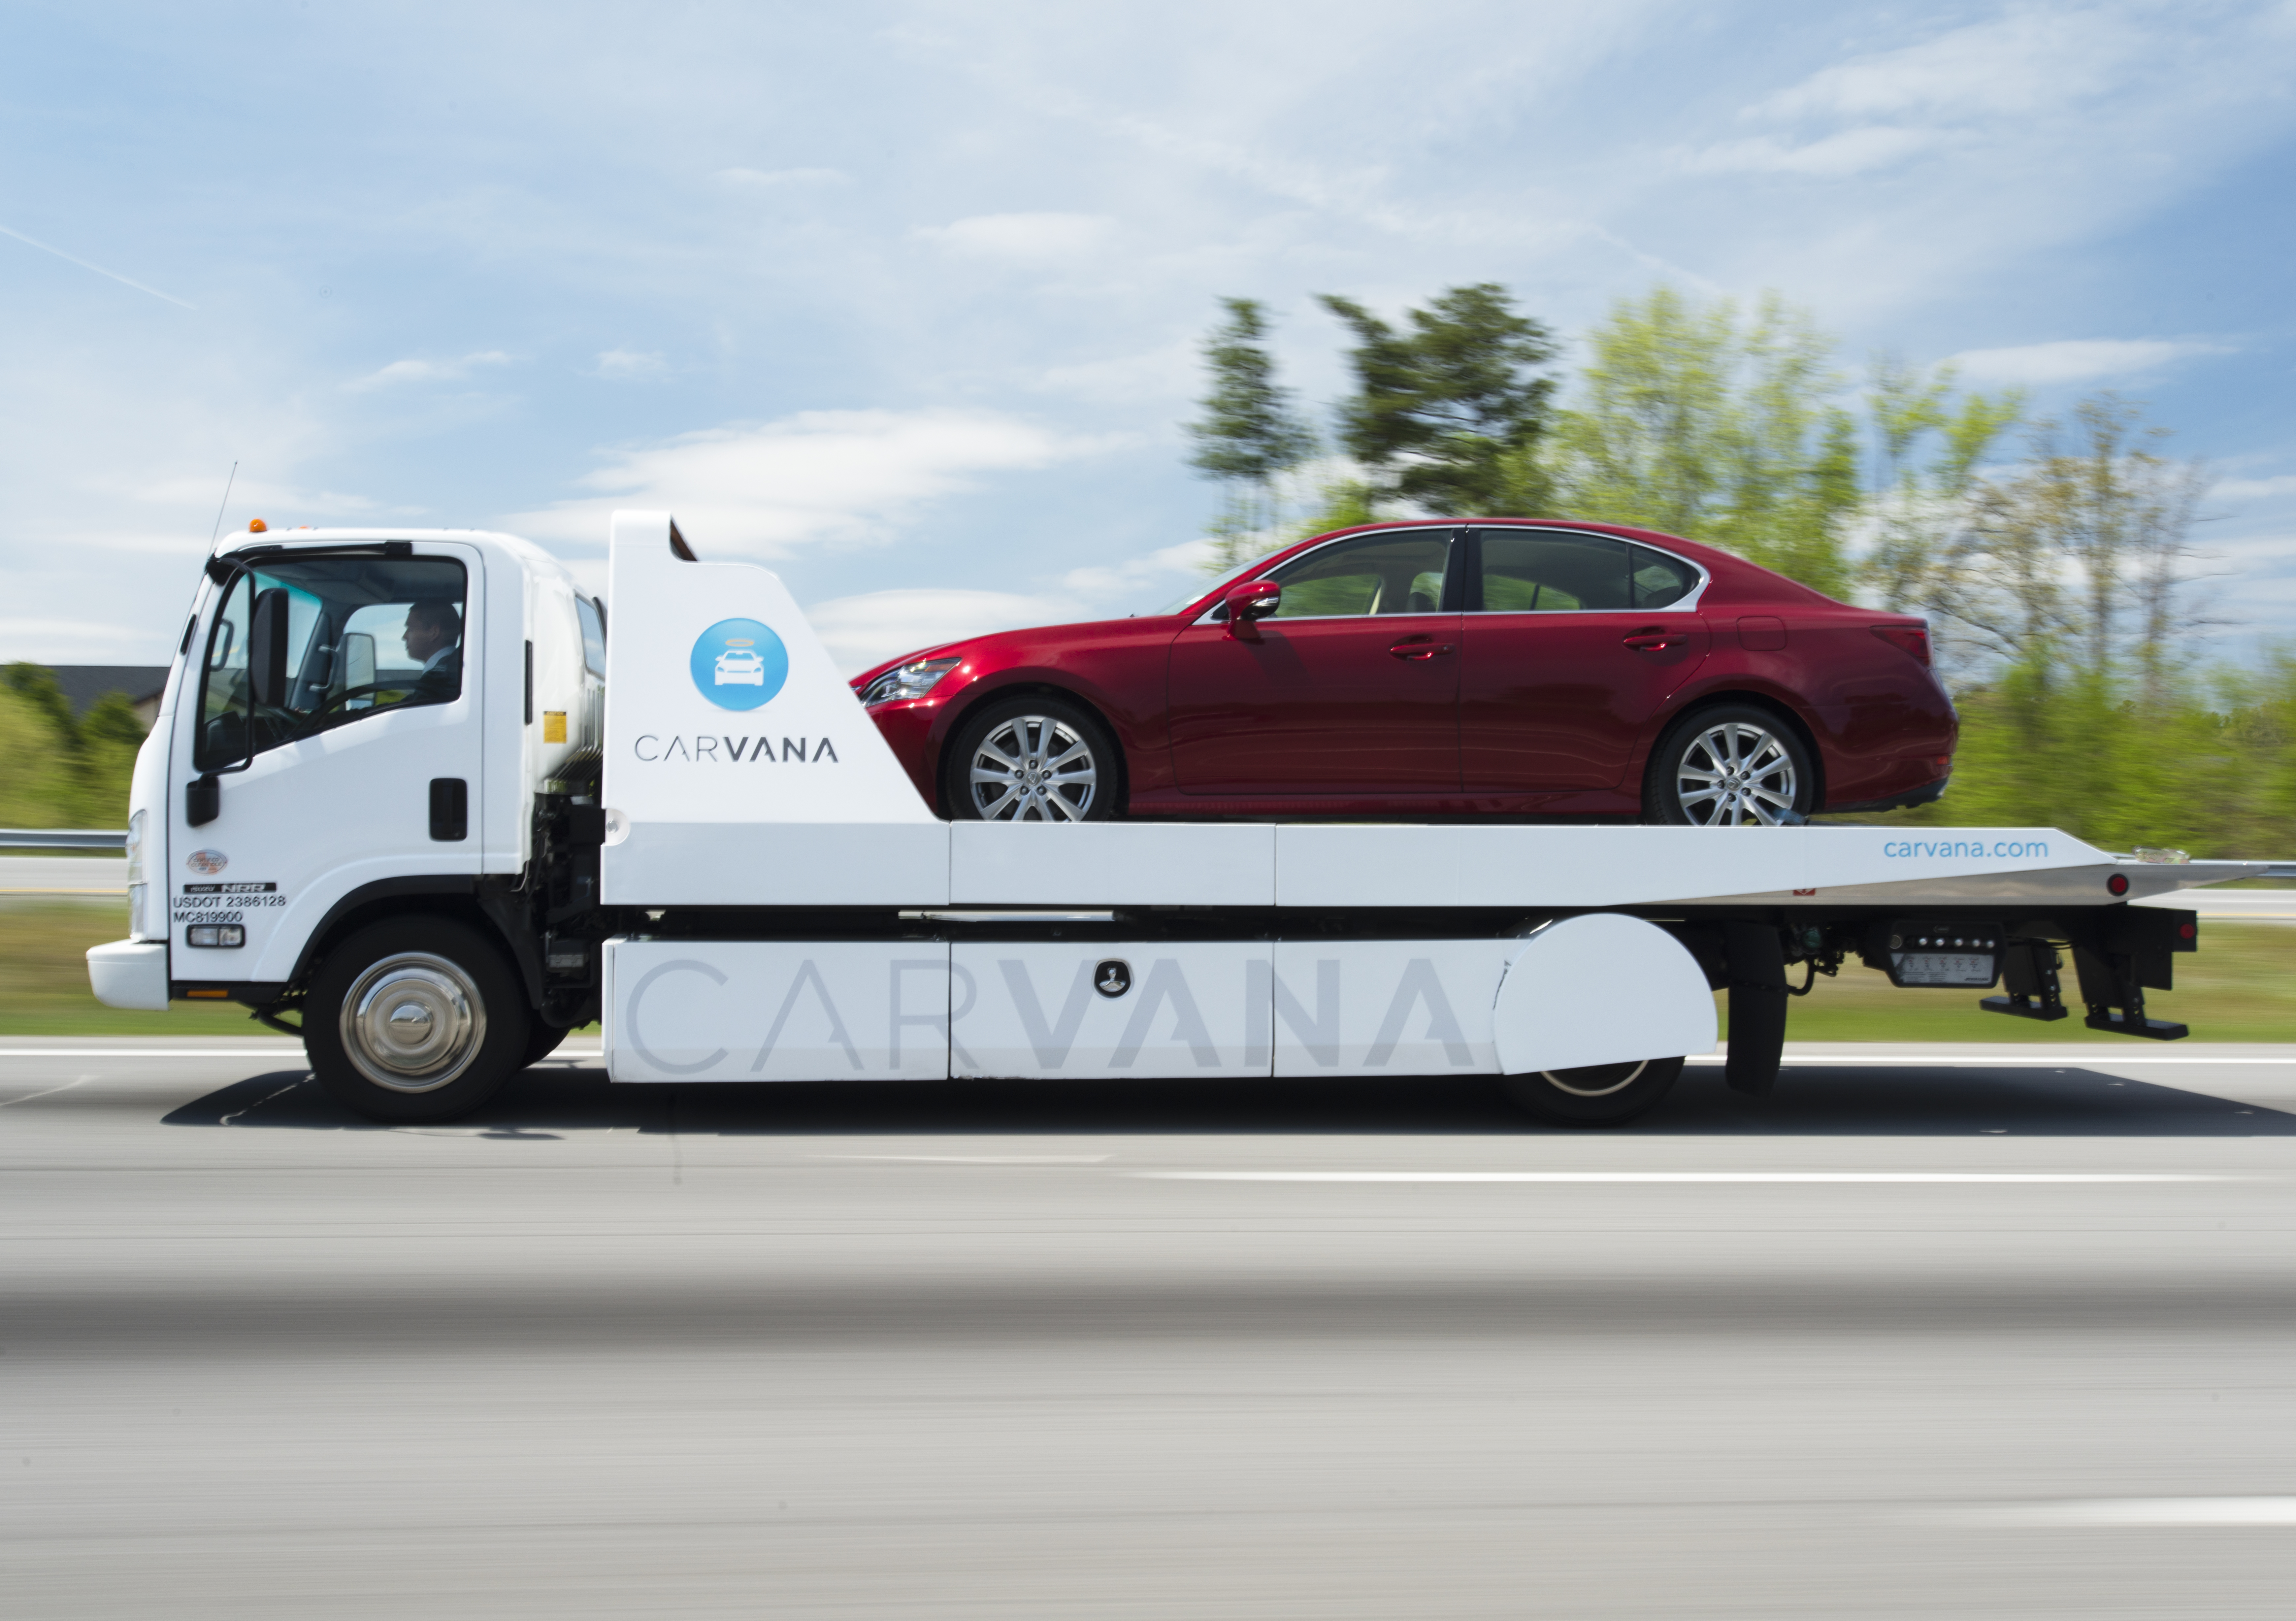 Carvana Brings Corpus Christi the New Way to Buy a Car | Business Wire